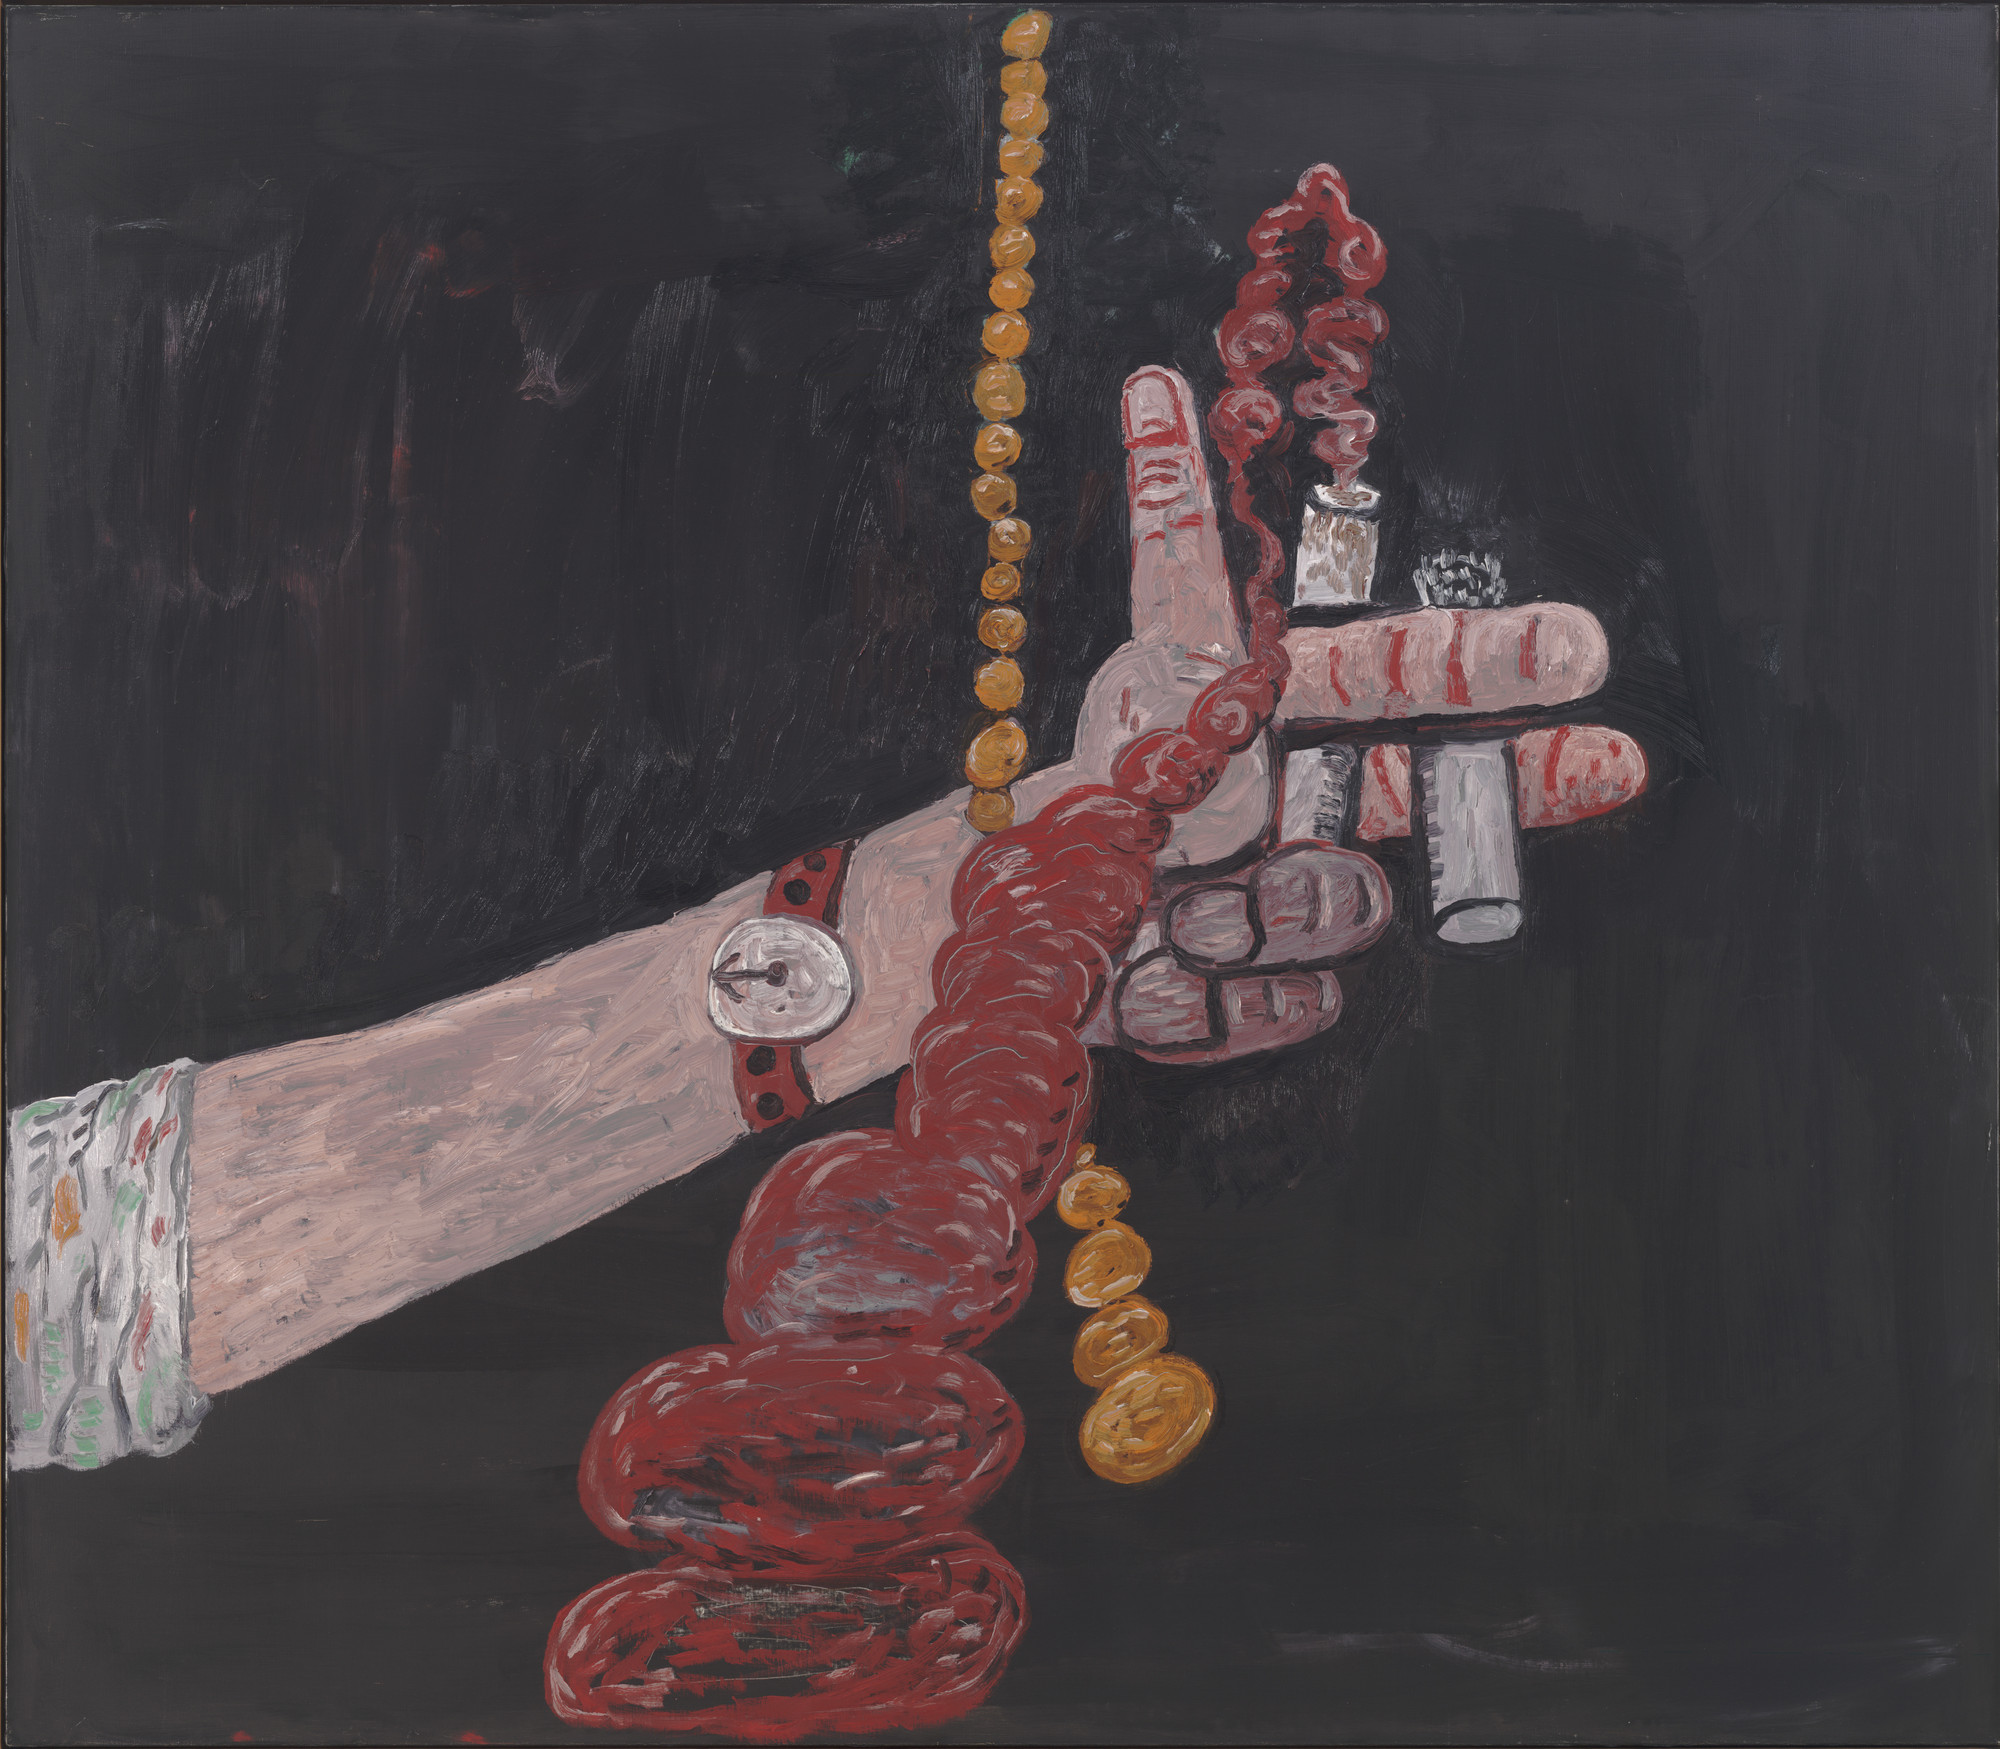 Philip Guston. Talking. 1979. Oil on canvas, 68 1/8″ × 6′ 6 1/4″ (173 × 198.8 cm). Gift of Edward R. Broida. © 2016 The Estate of Philip Guston